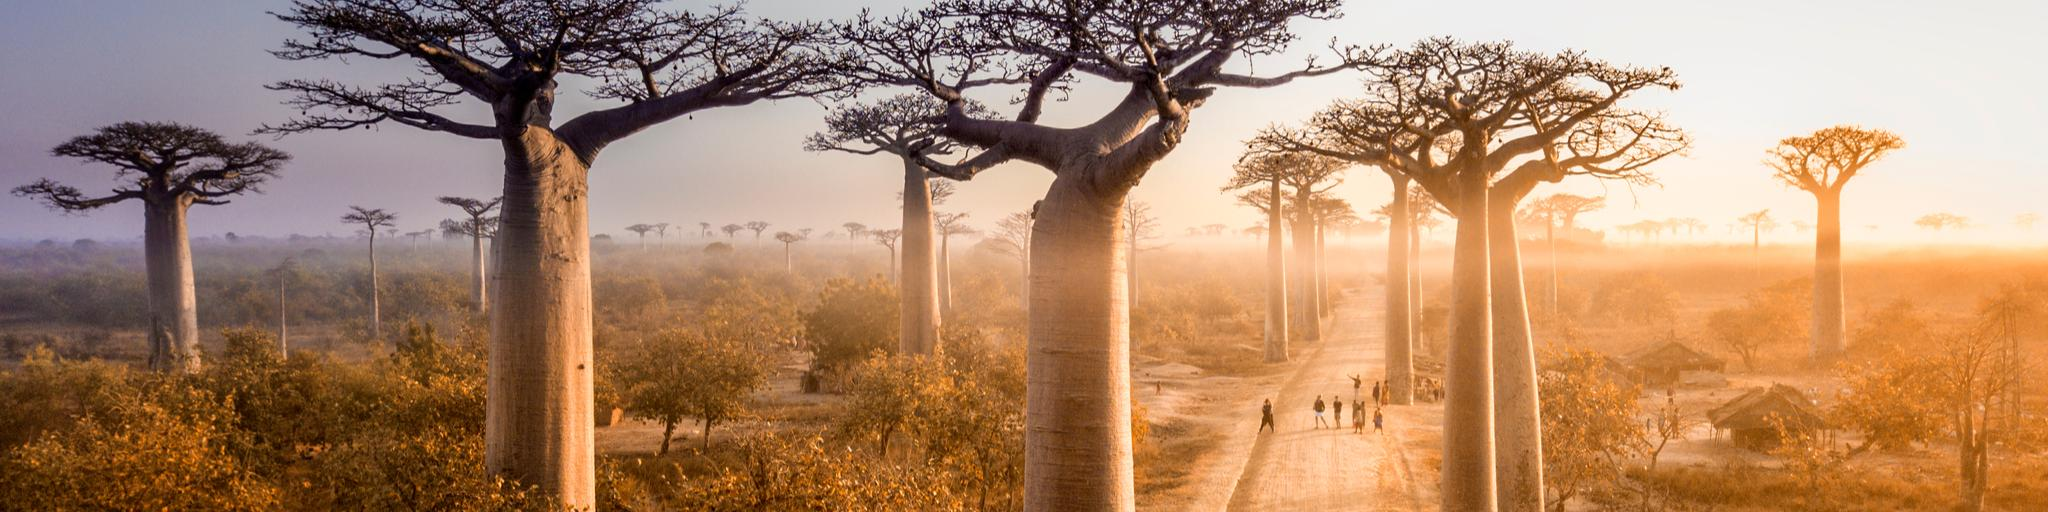 A car drives down the Avenue of the Baobabs in Madagascar, Africa, at sunrise